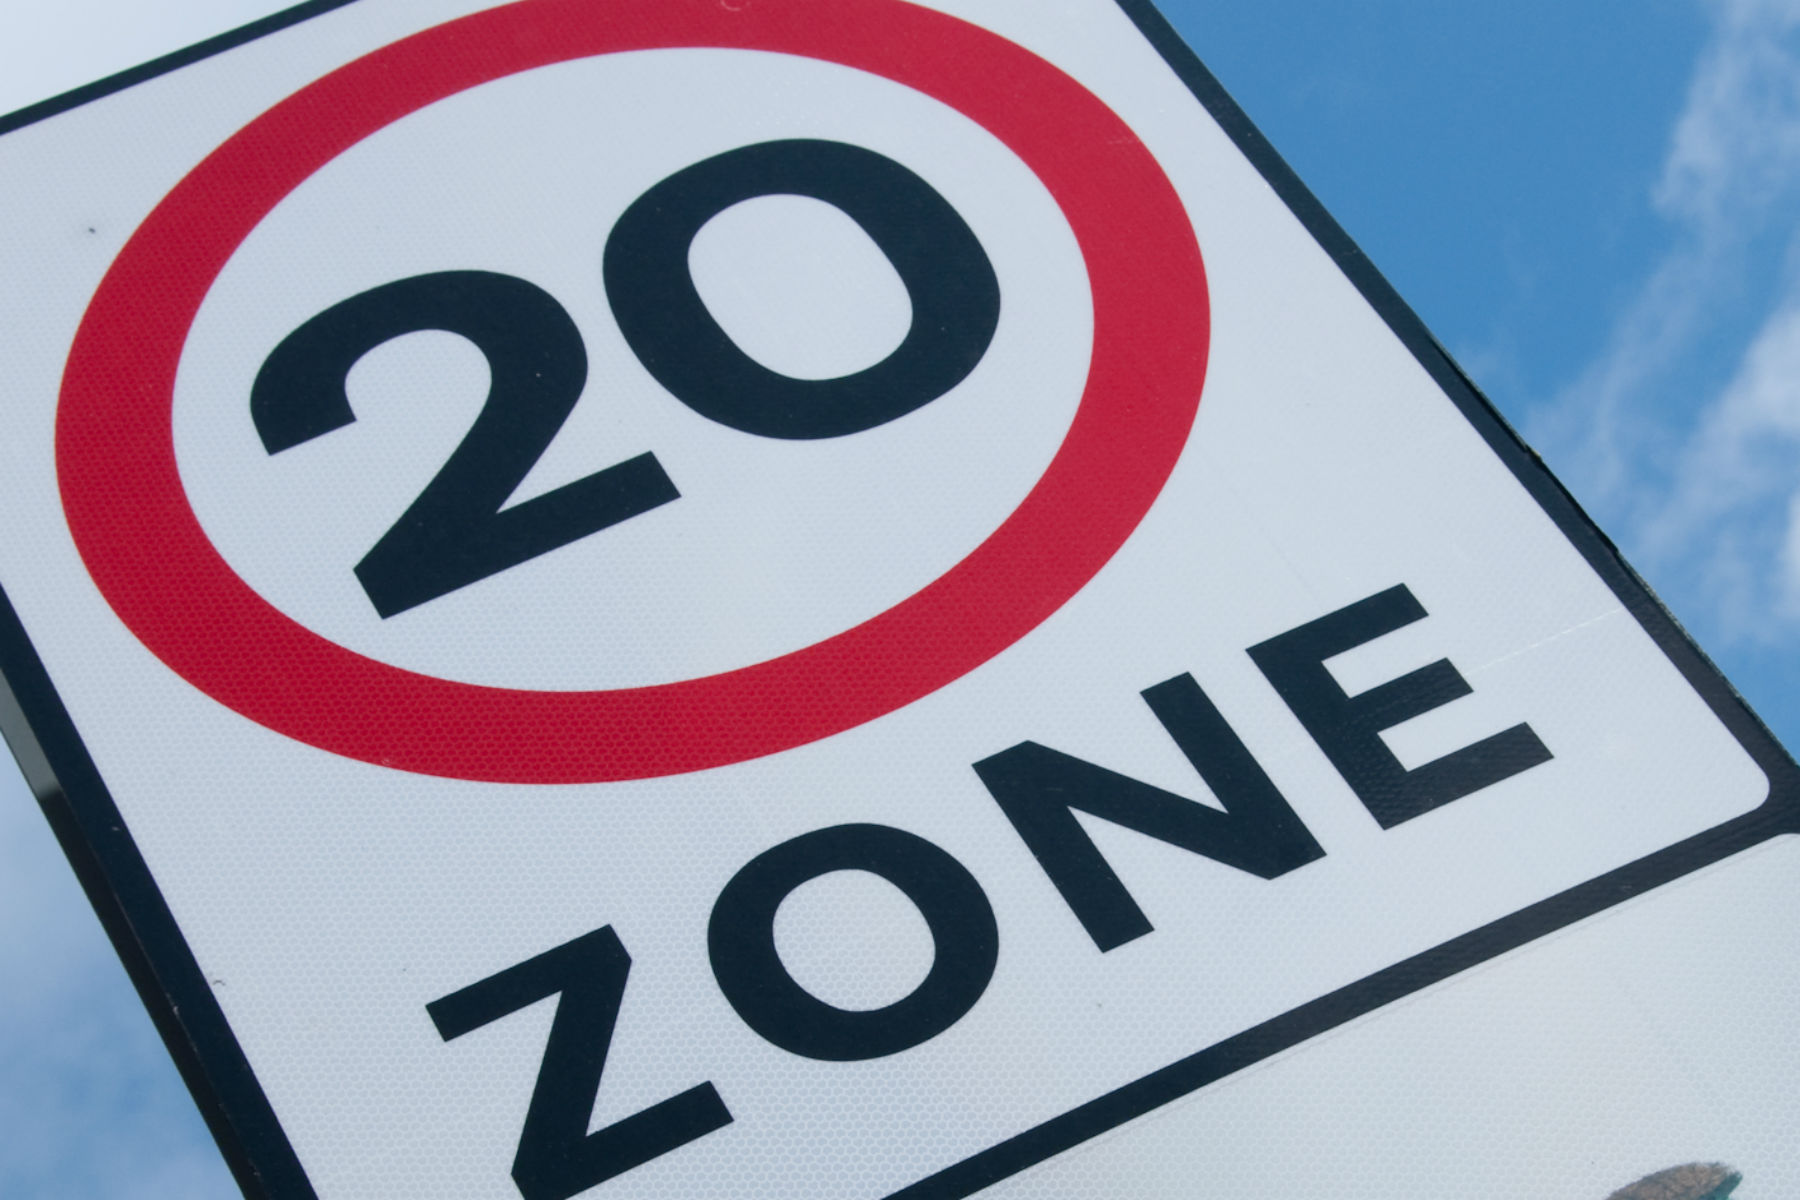 Calls for 20mph limits to reduce NOx emissions